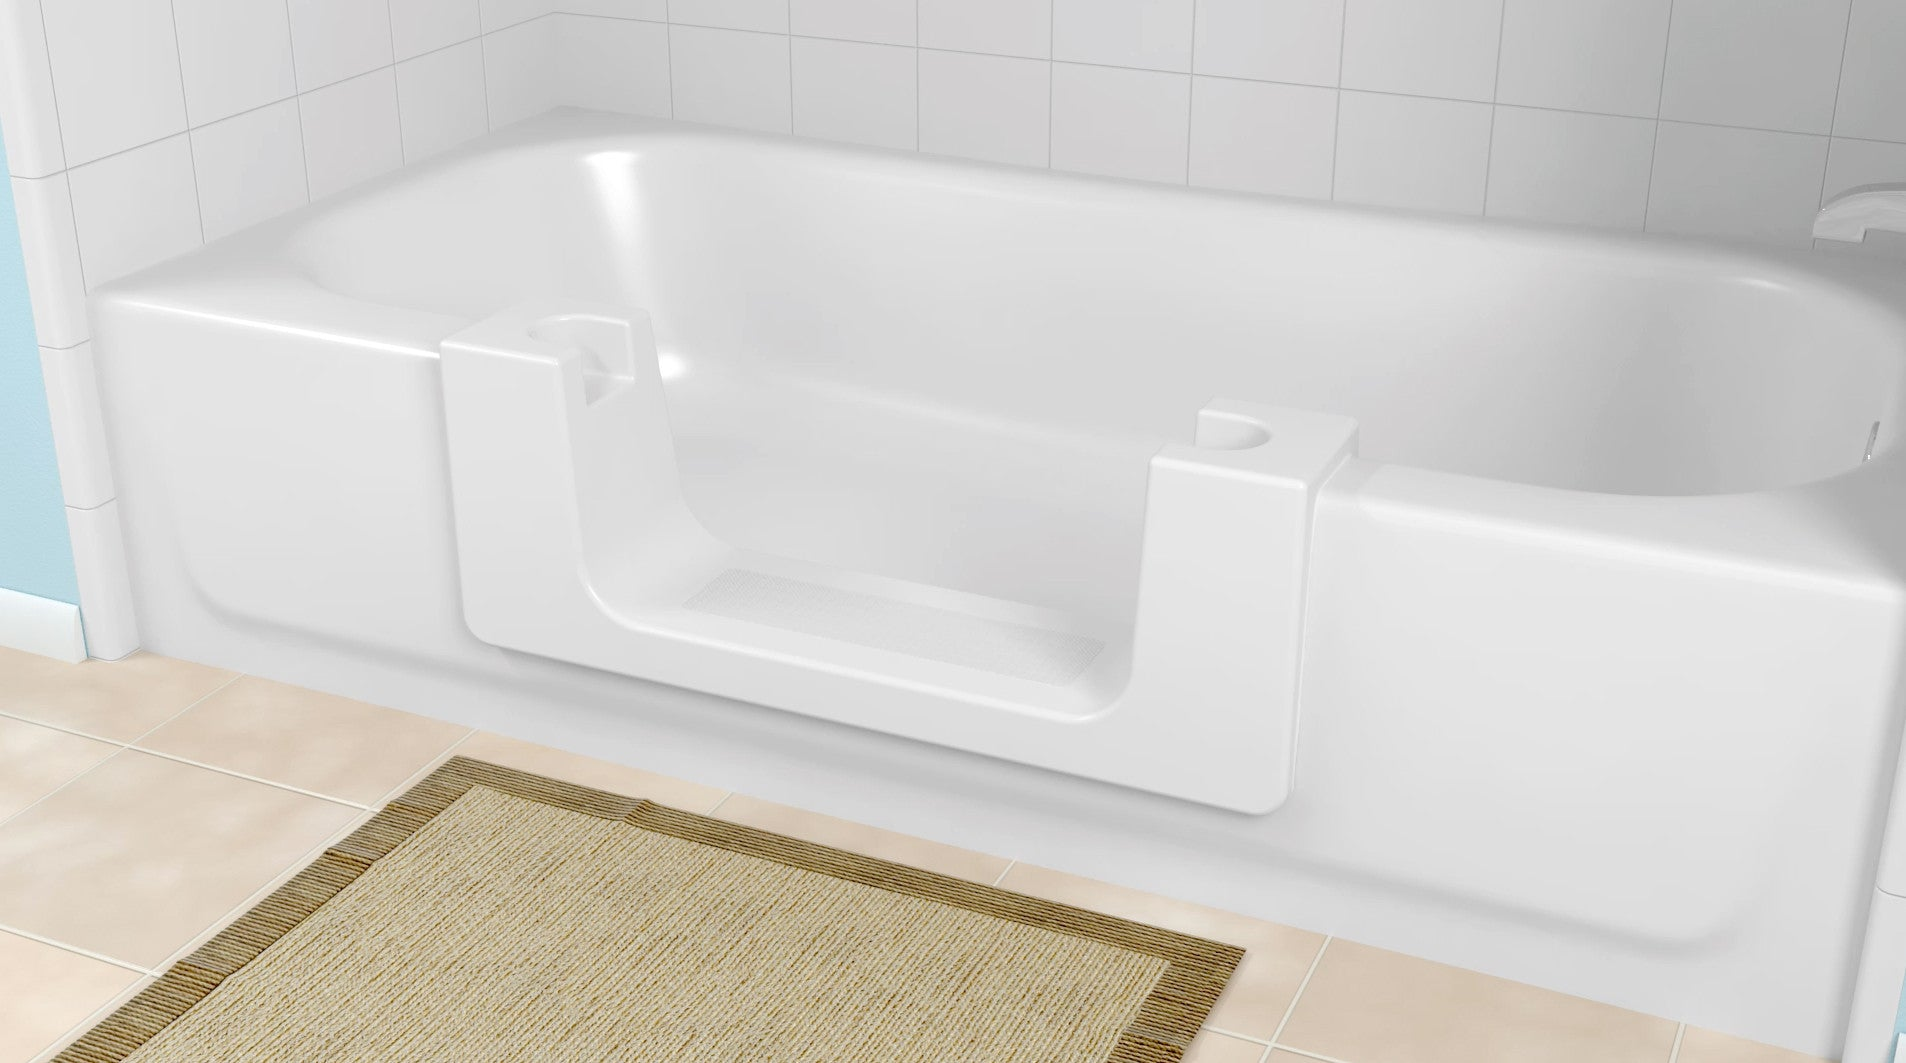 Walk In Convertible Bath Tub for Easy Entry – Safe Home Pro